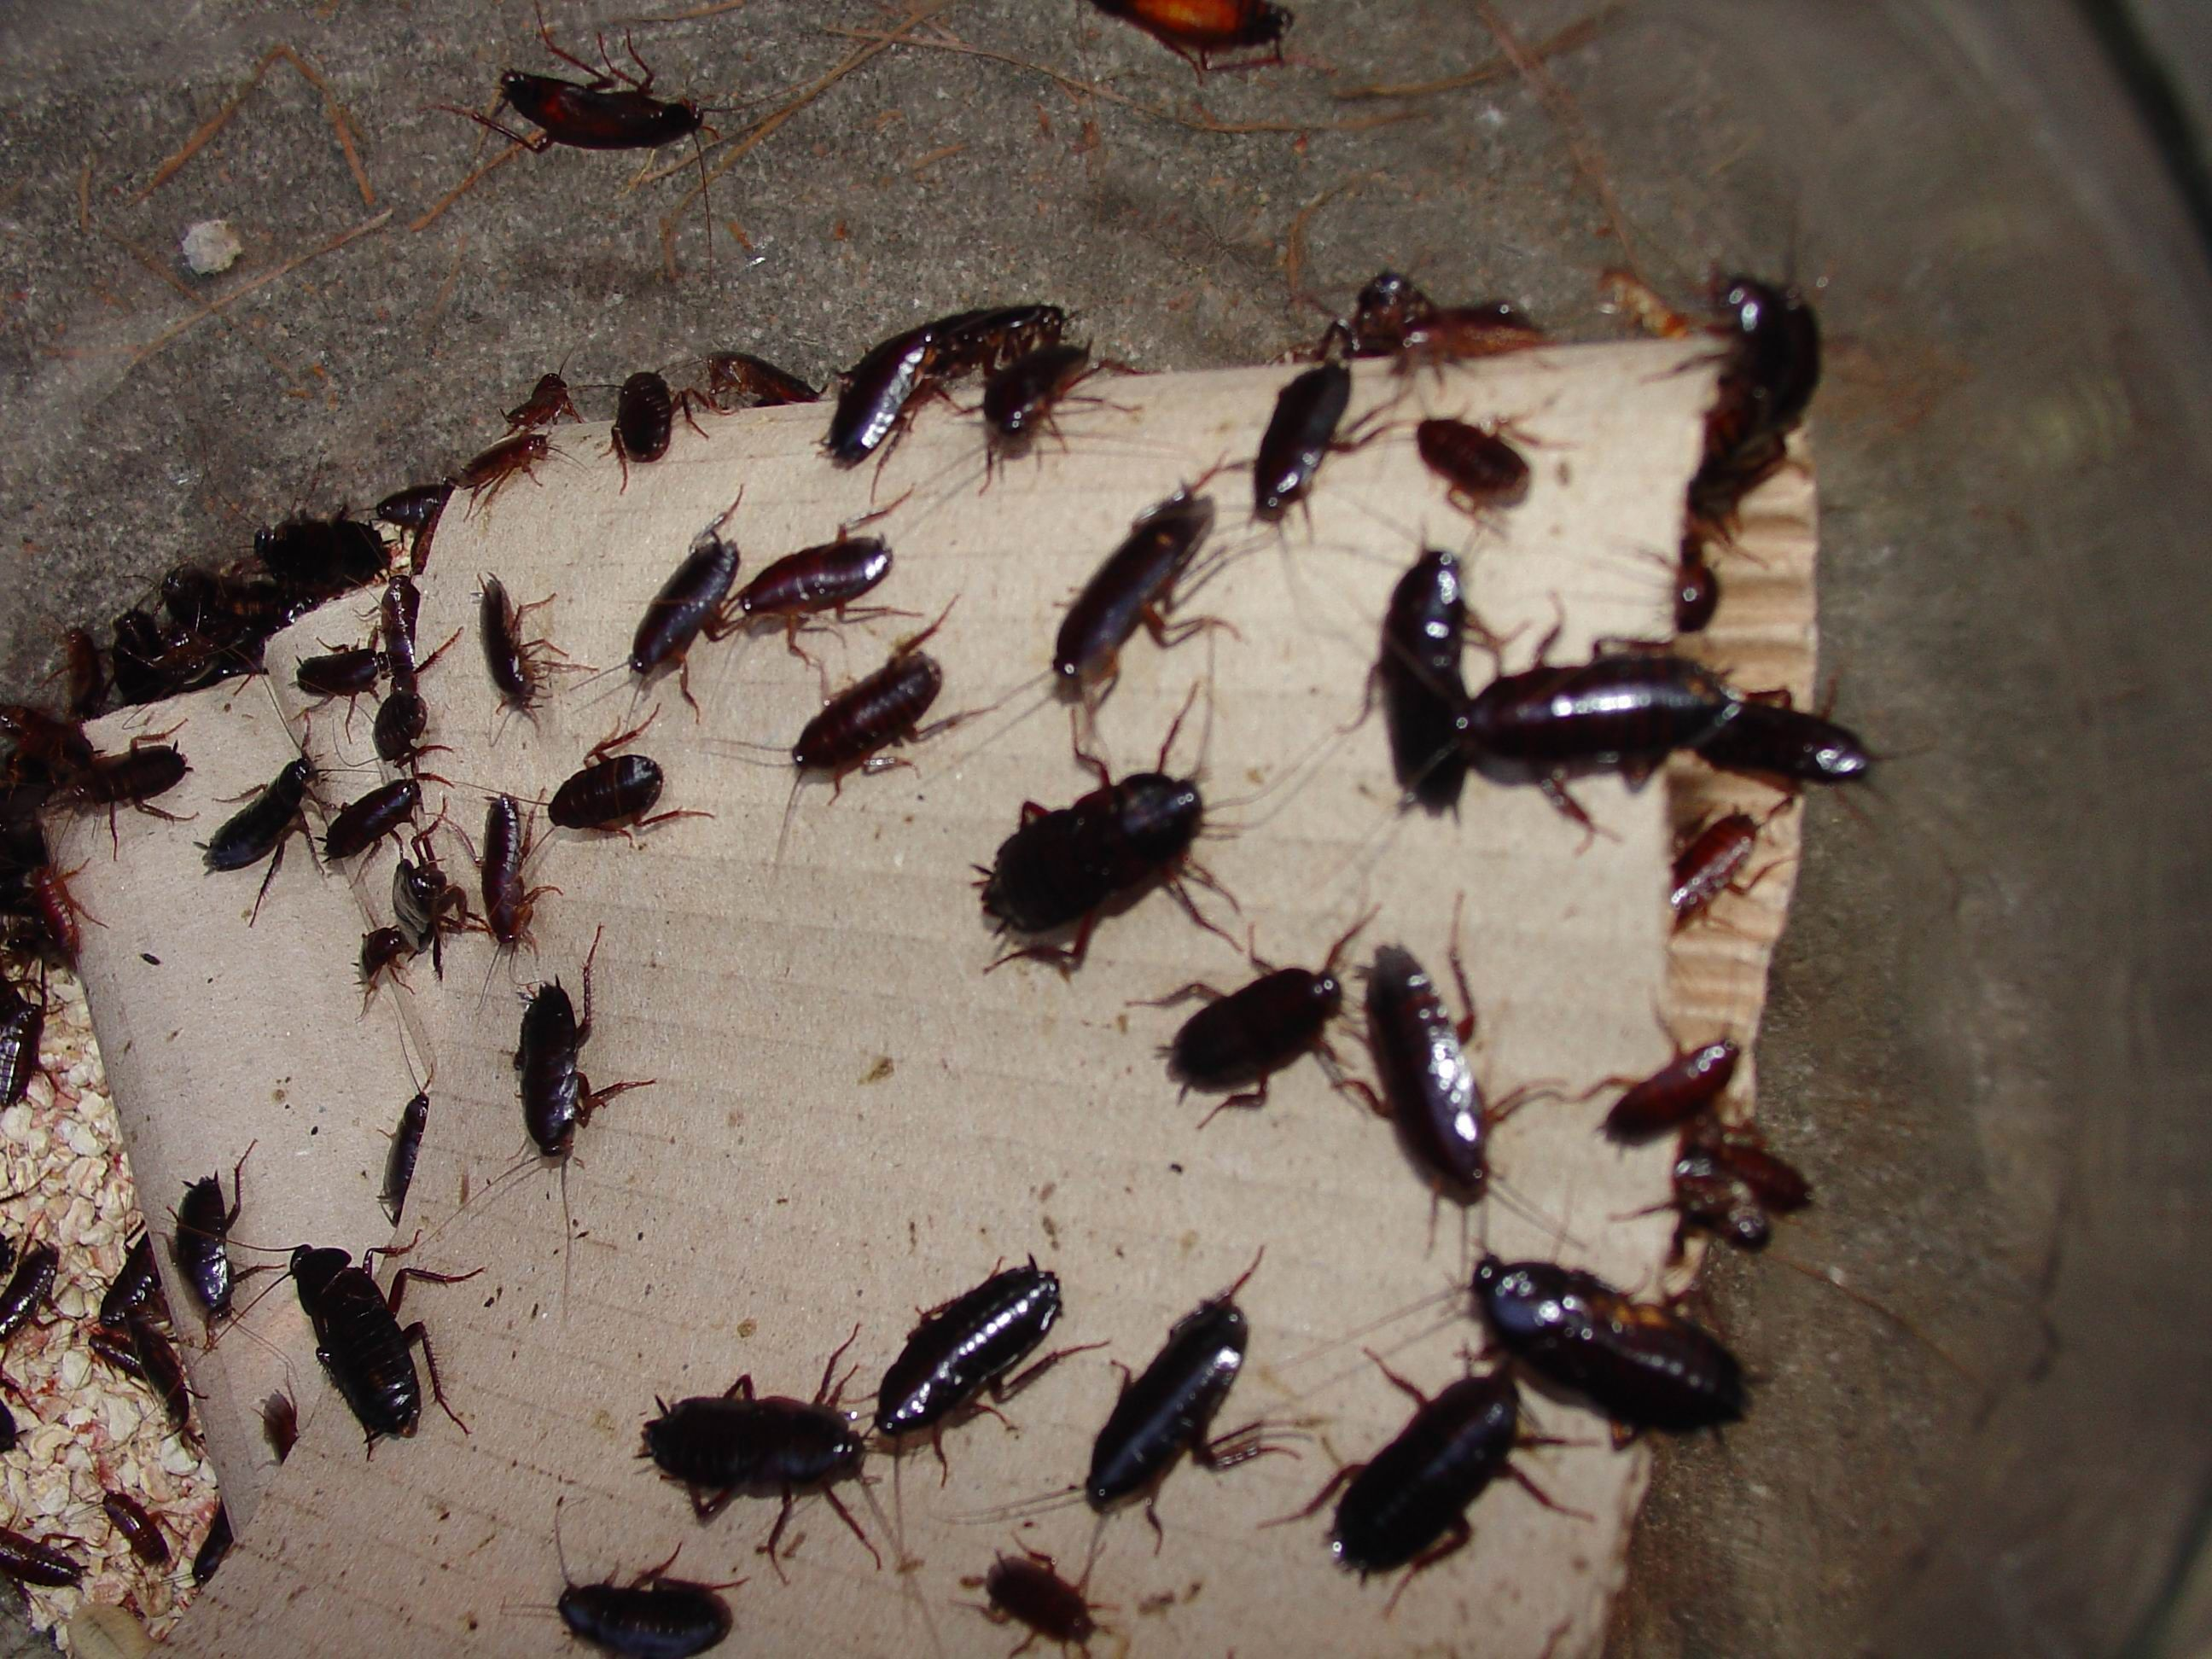 Pin by Trish Ayres on Homemade Stuff Diy pest control